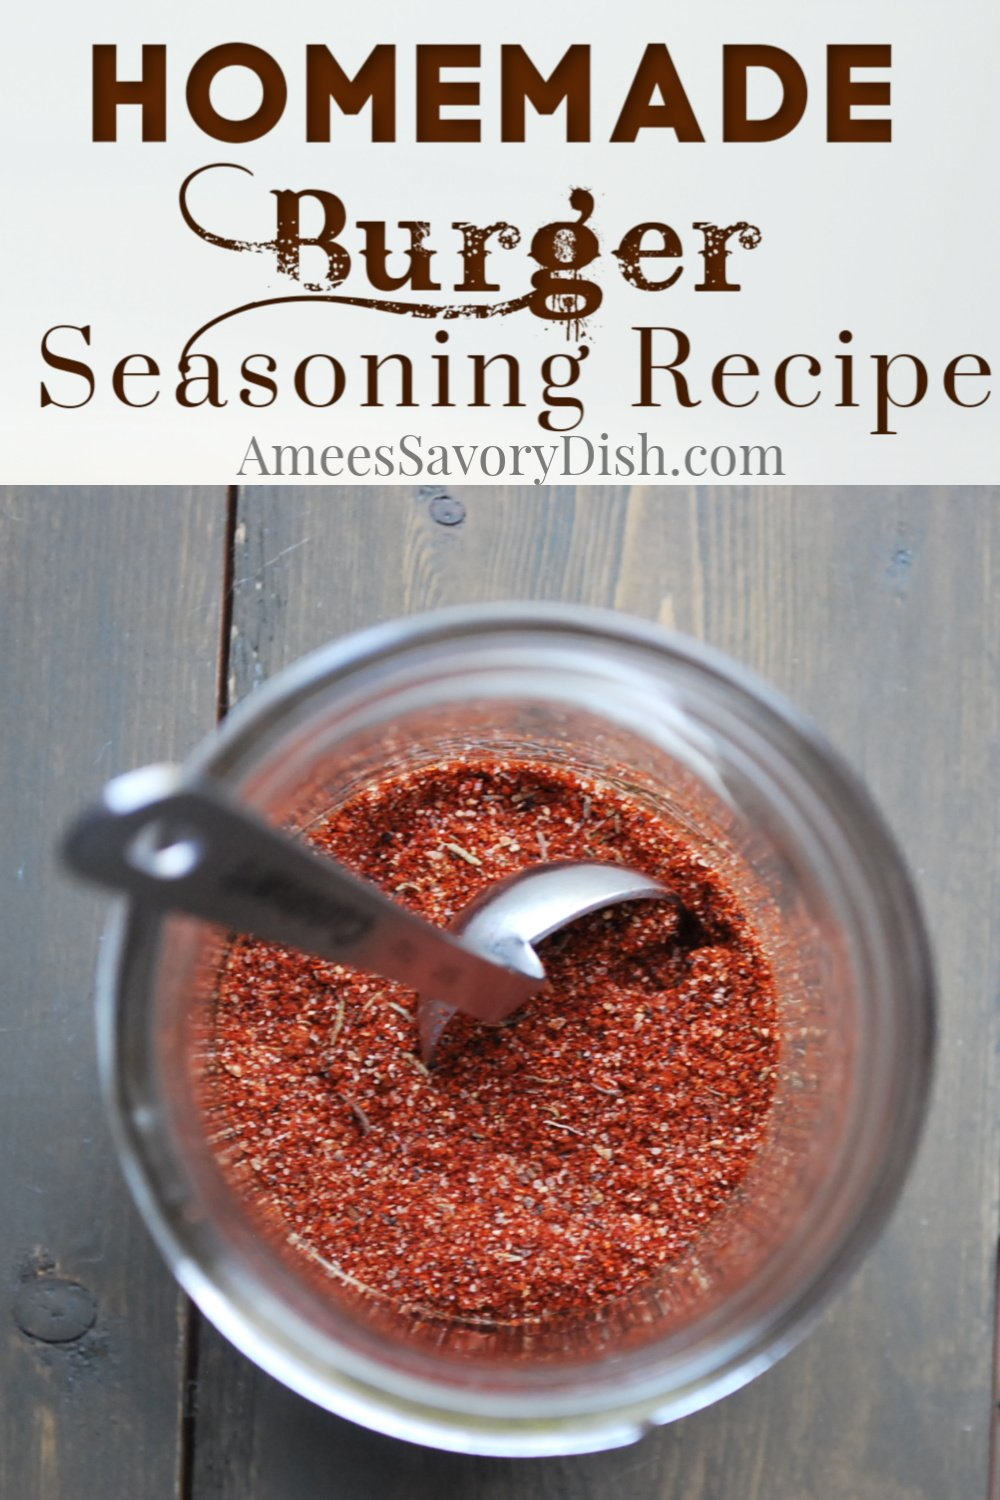 Love a juicy, flavorful burger hot off the grill? Then you'll love this homemade burger seasoning blend for your next summer cookout! It also makes a fantastic brisket rub! #burgerseasoning #burgerrecipe #burgers #seasoningrecipe via @Ameessavorydish